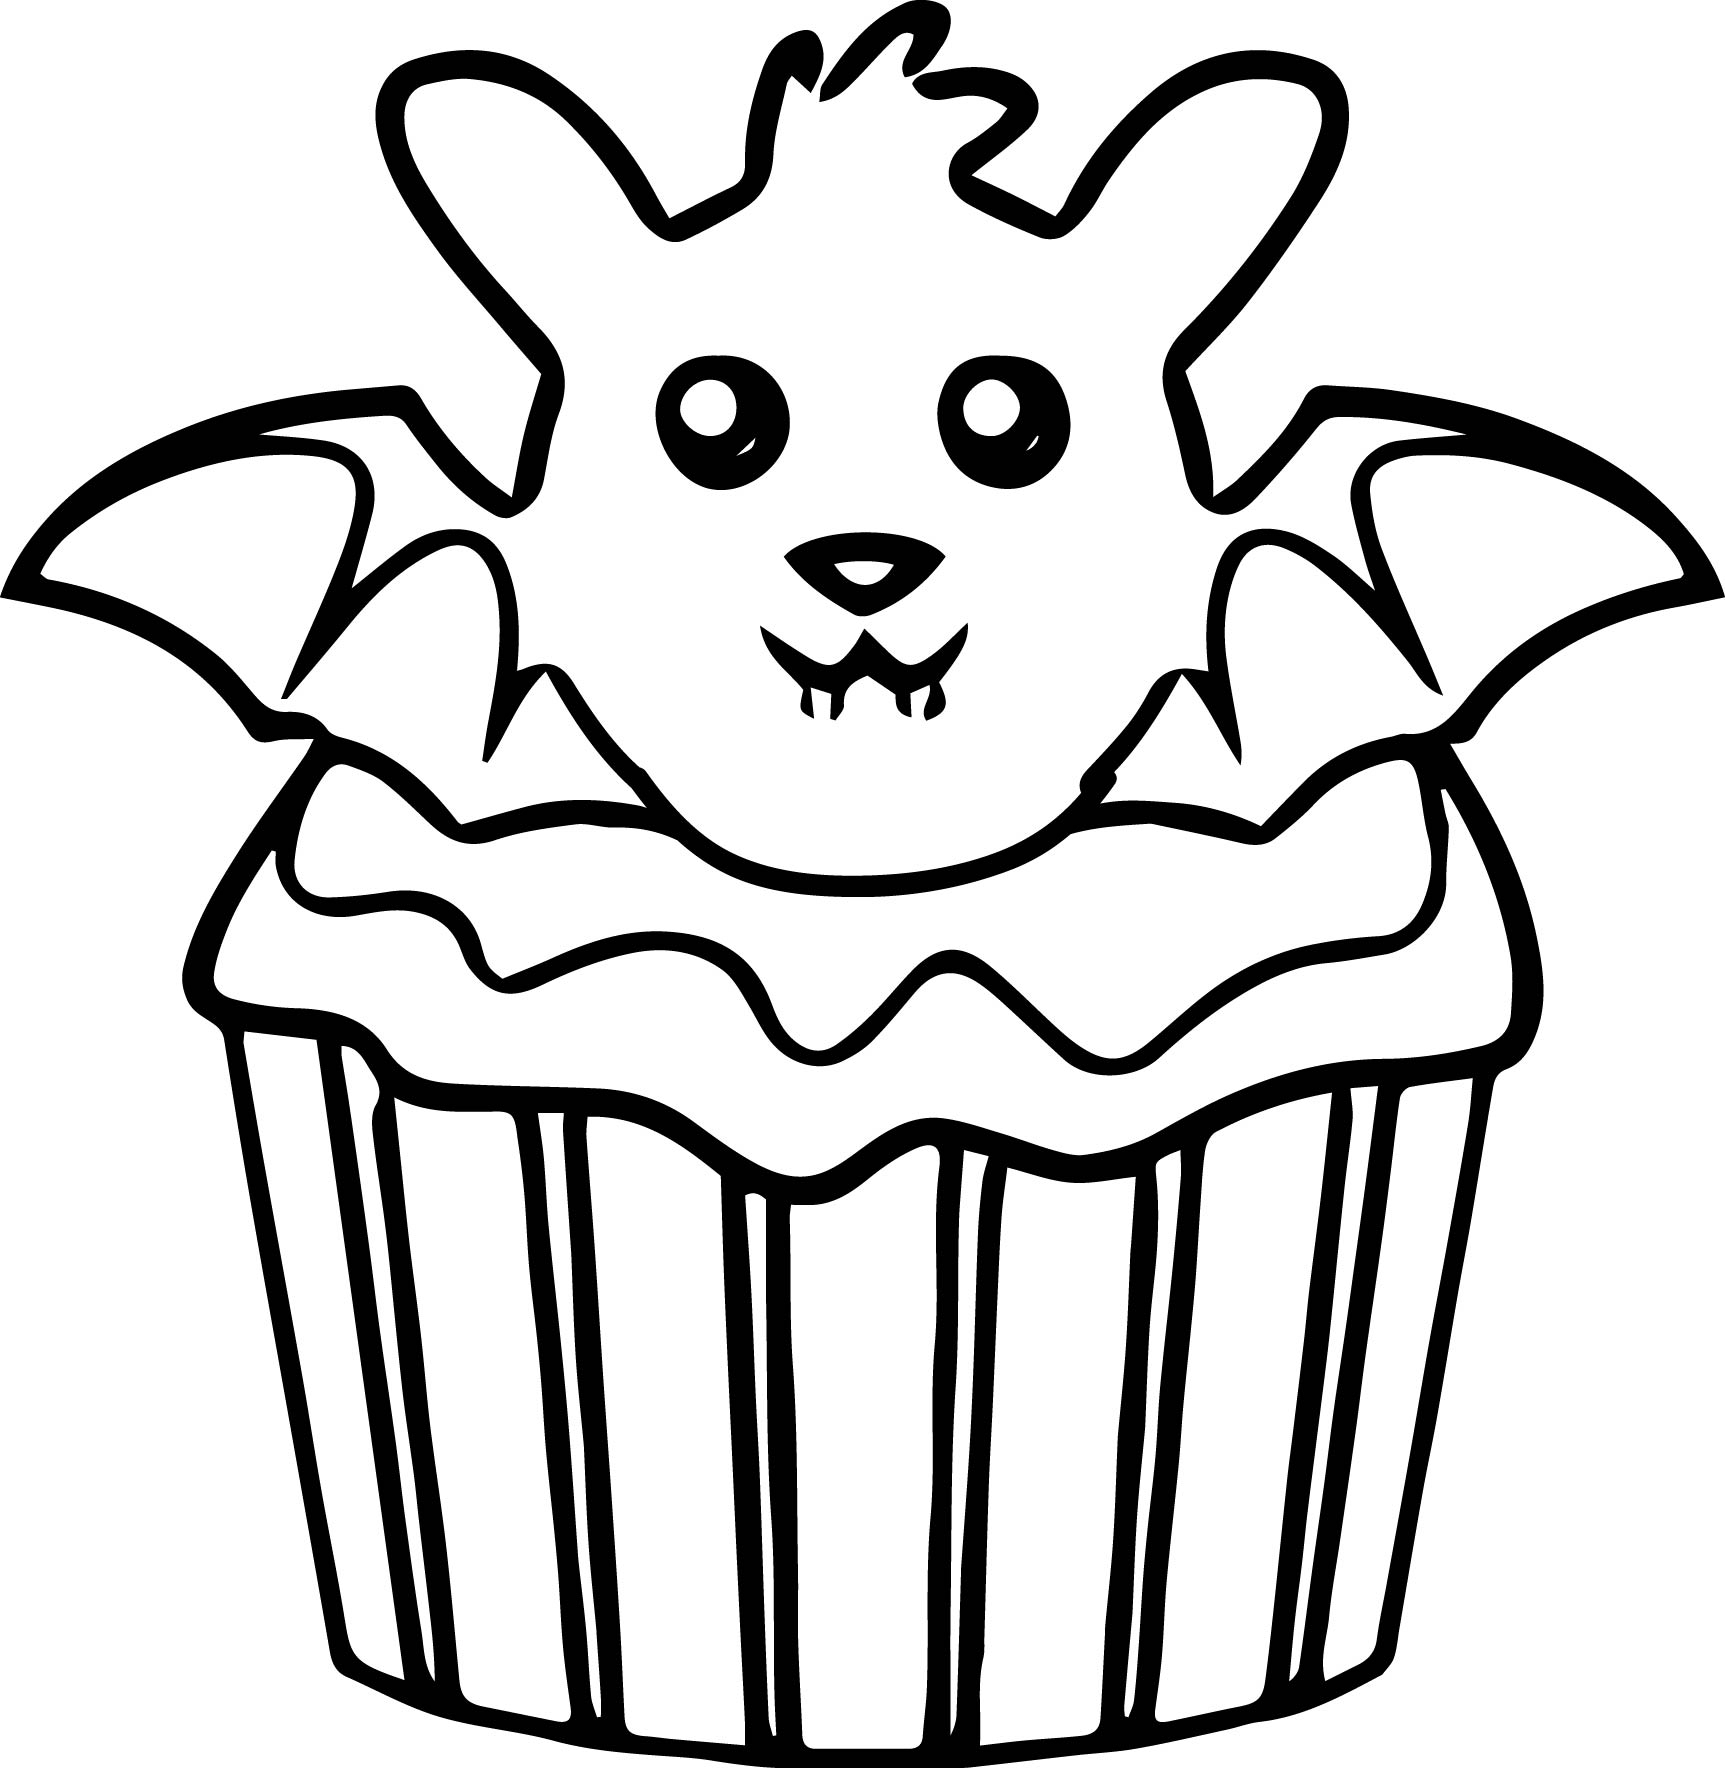 muffin coloring sheet muffin coloring page ultra coloring pages sheet muffin coloring